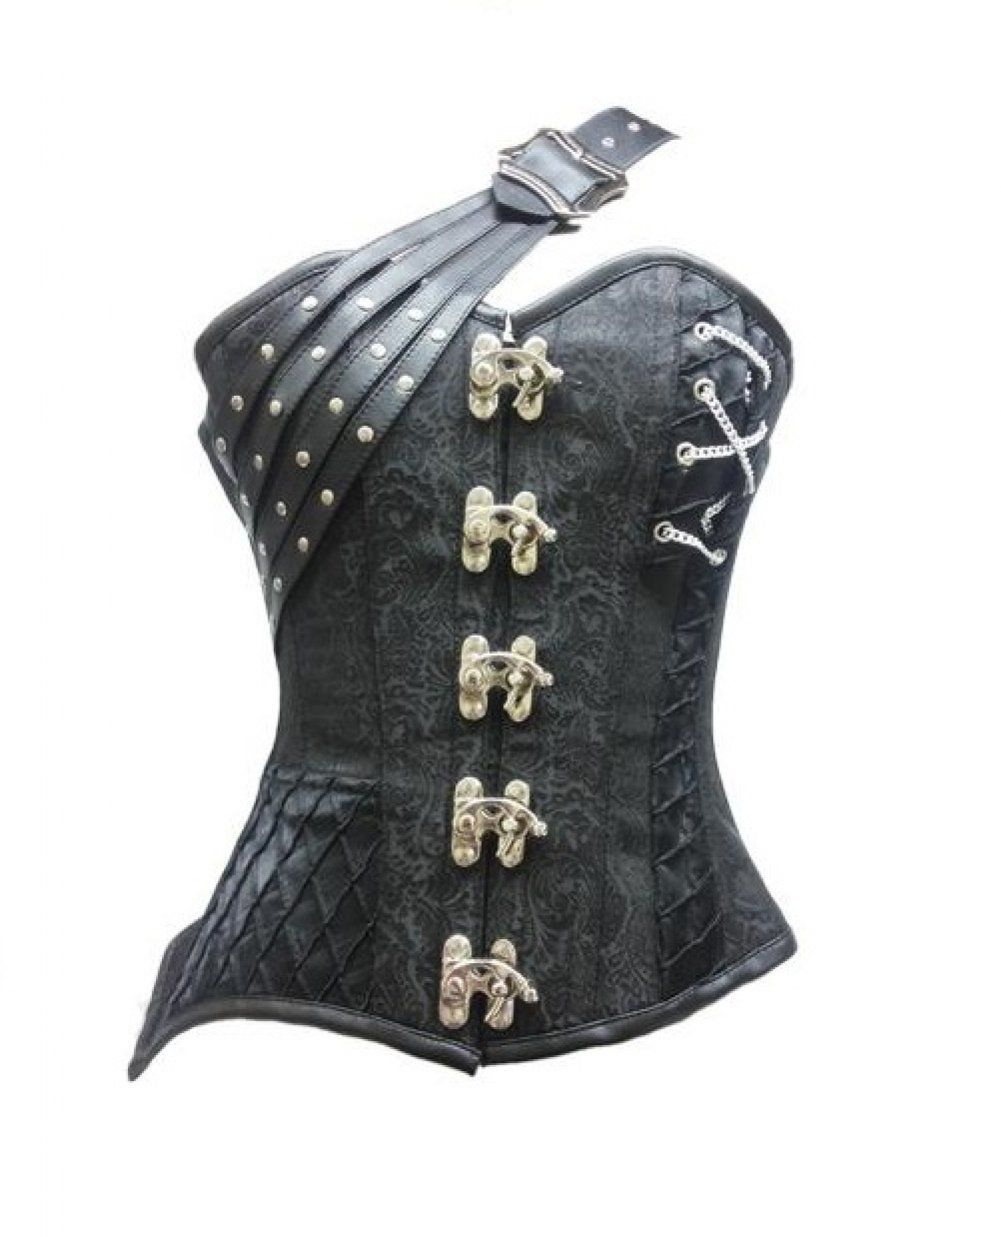 Black Brocade Leather Straps Gothic Steampunk Bustier Burlesque Overbust corset